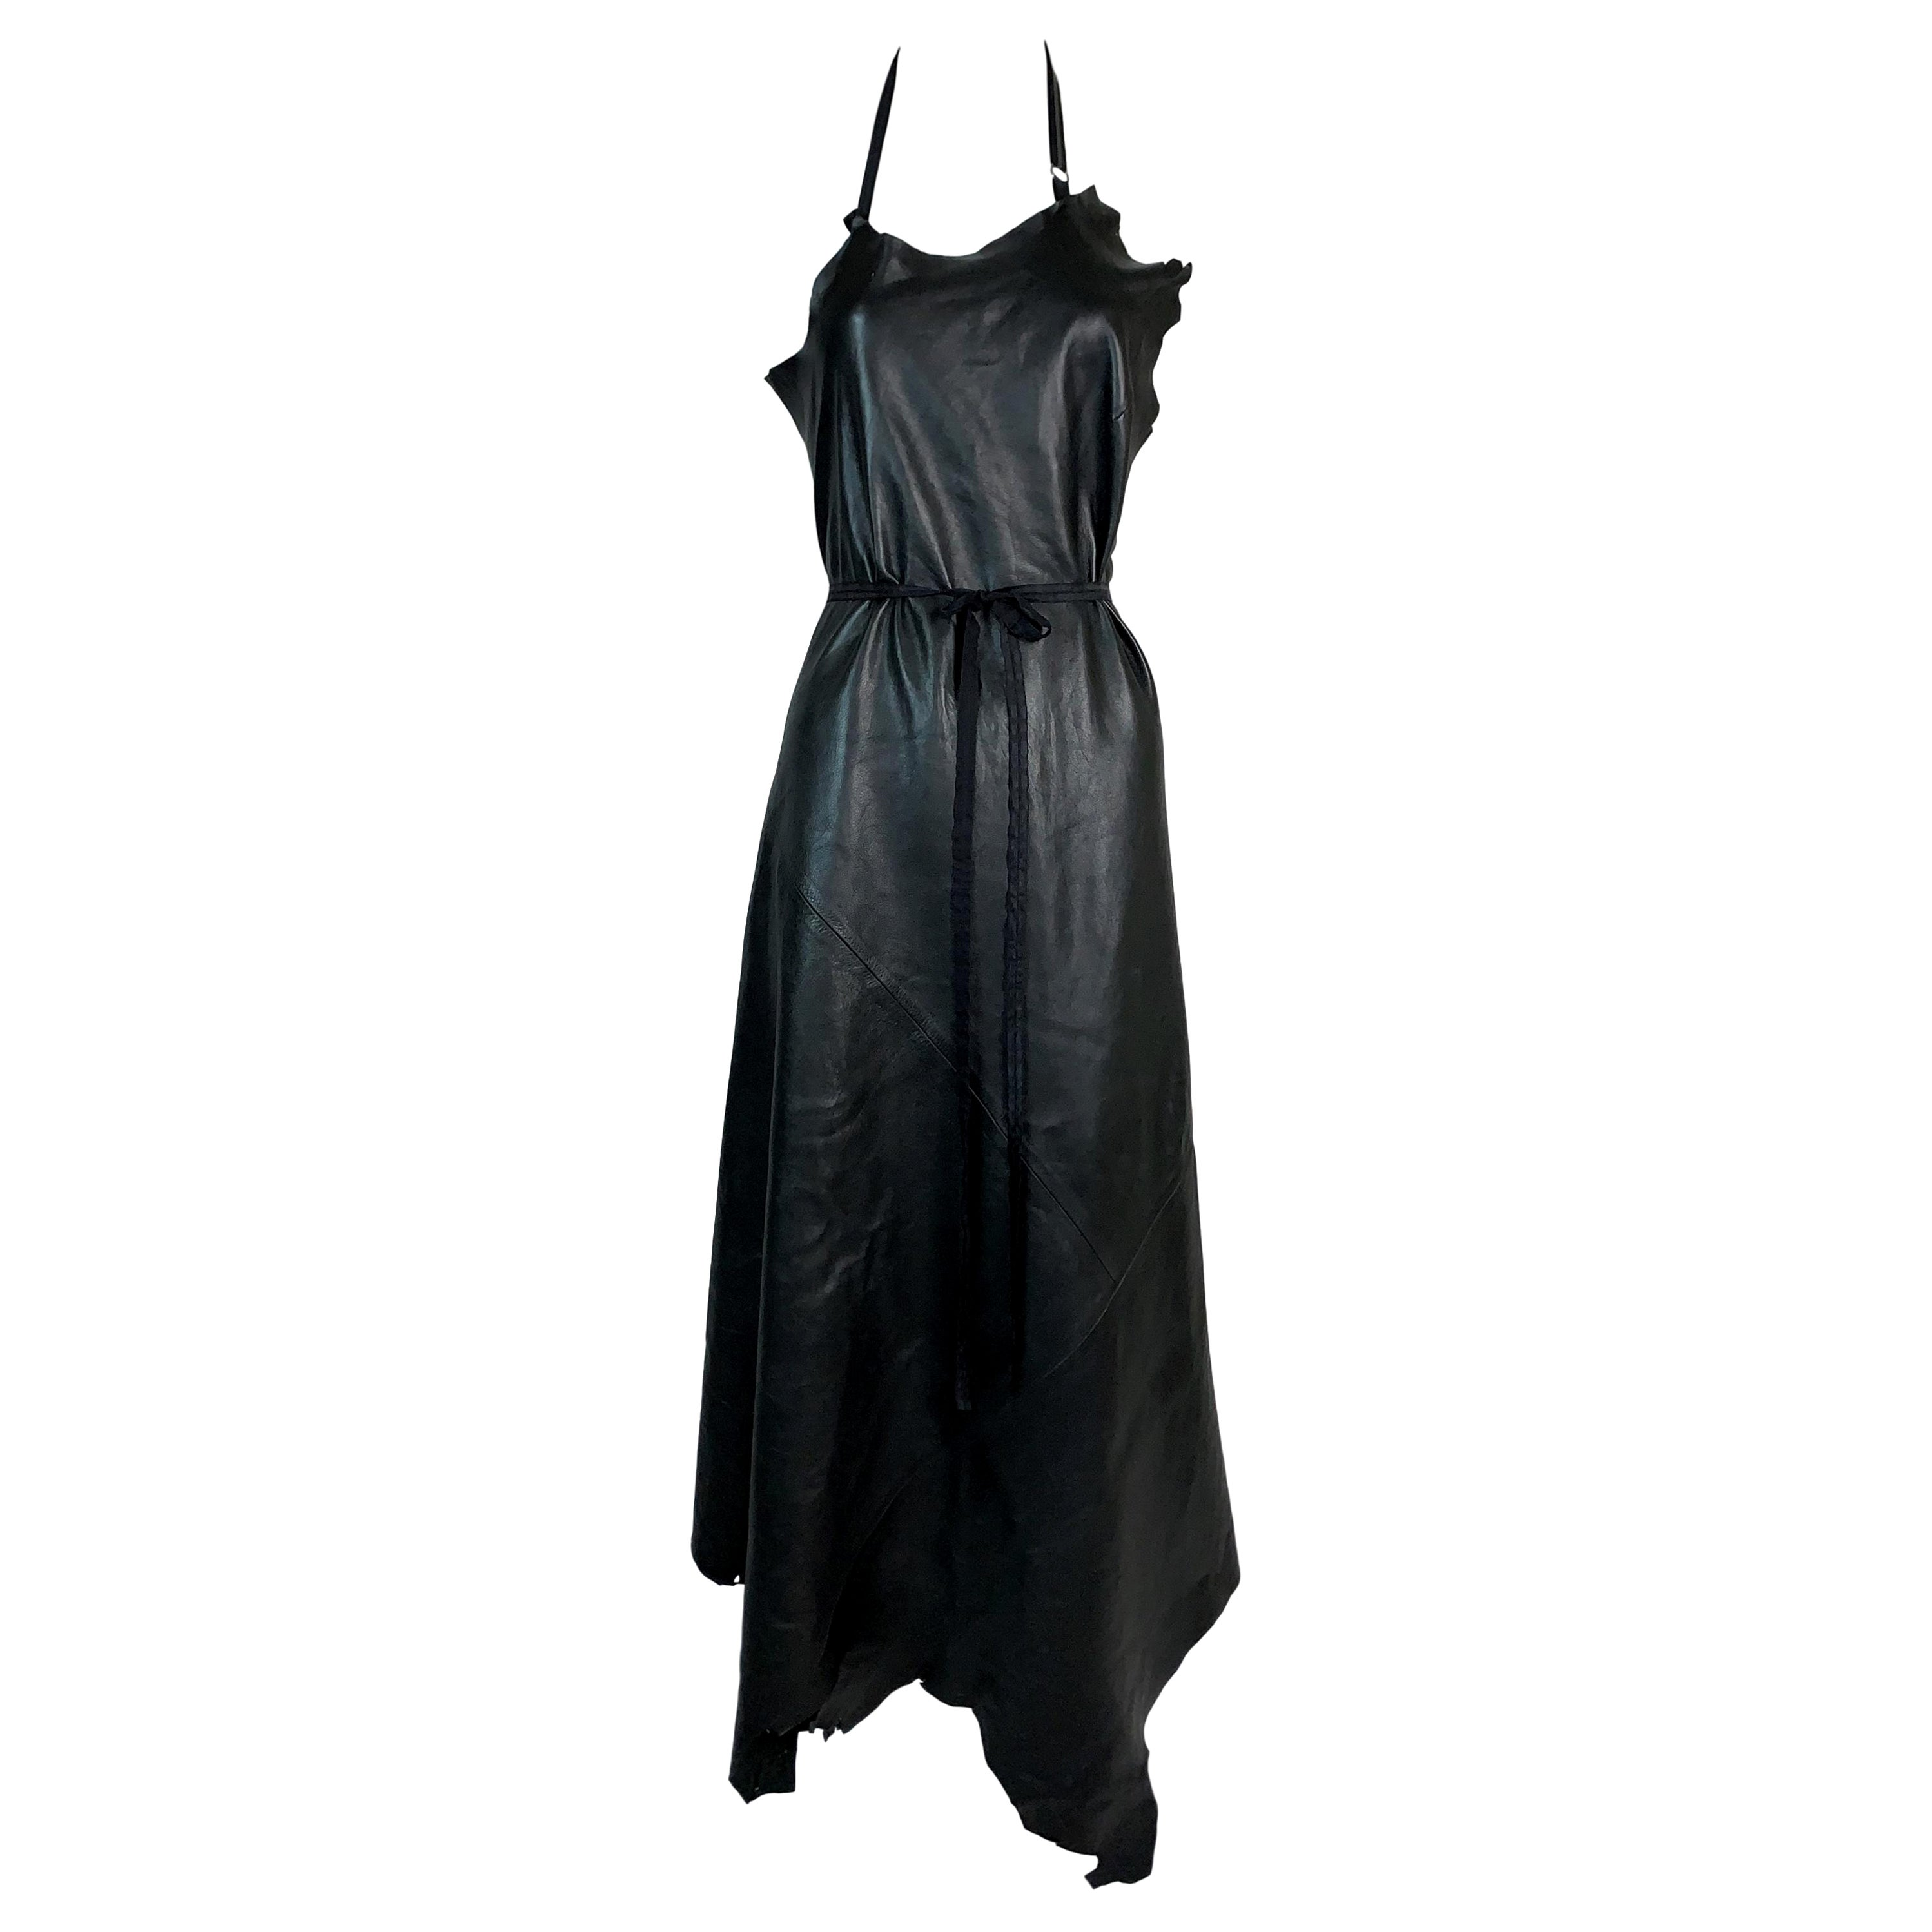 S/S 1999 Maison Martin Margiela Artisanal Black Distressed Leather Halter Apron